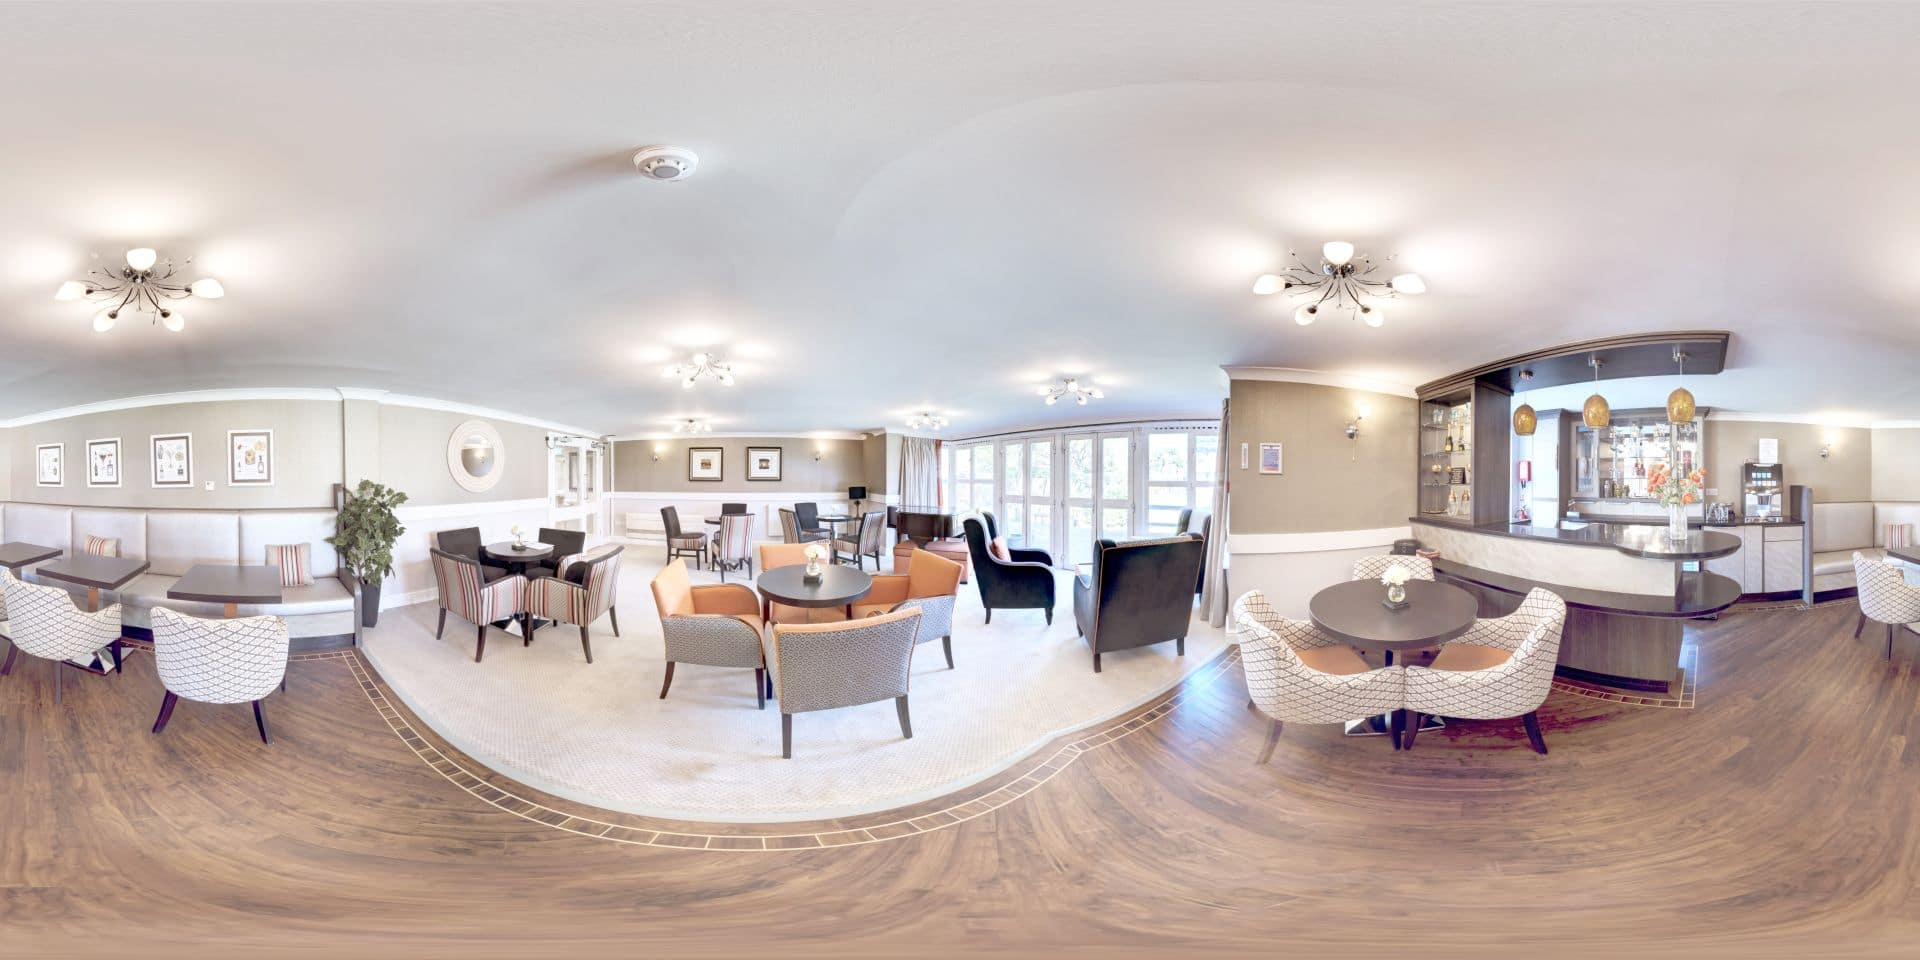 Guild Care - Caer Gwent - Virtual Tour